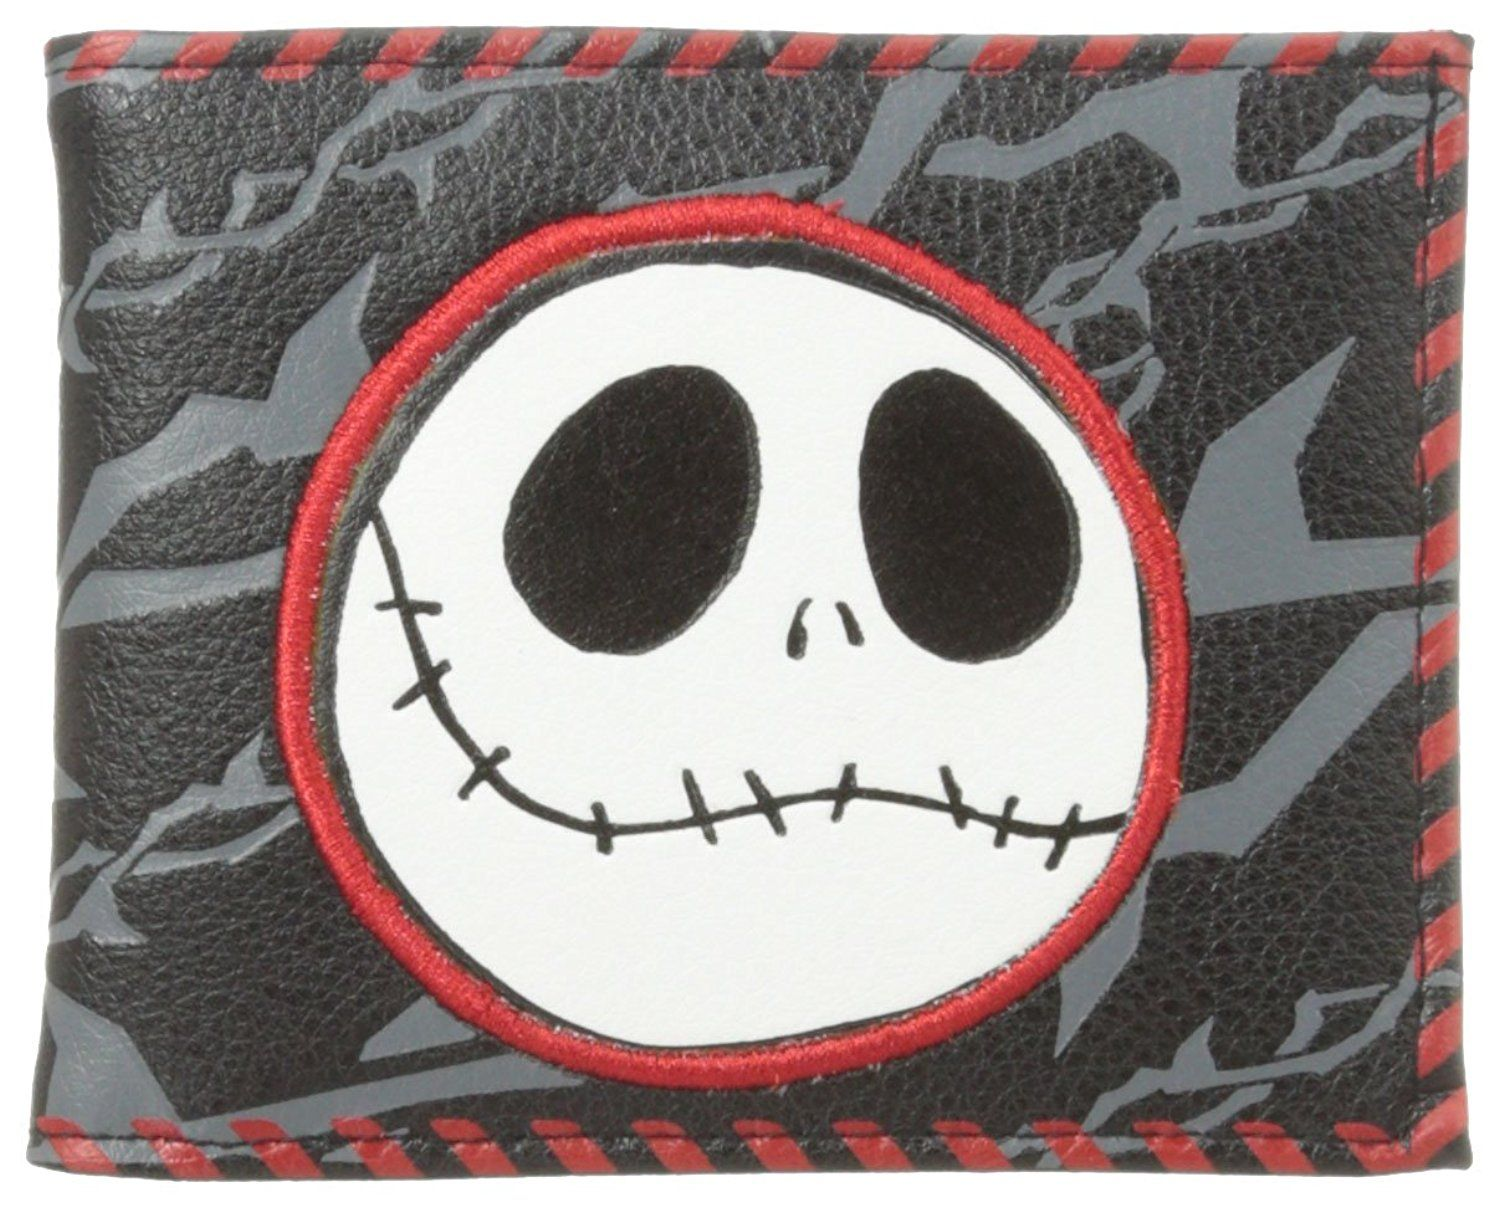 Disney Nightmare Before Christmas Men's Billfold Wallet with Jack's Face >>> Read more reviews of the product by visiting the link on the image.